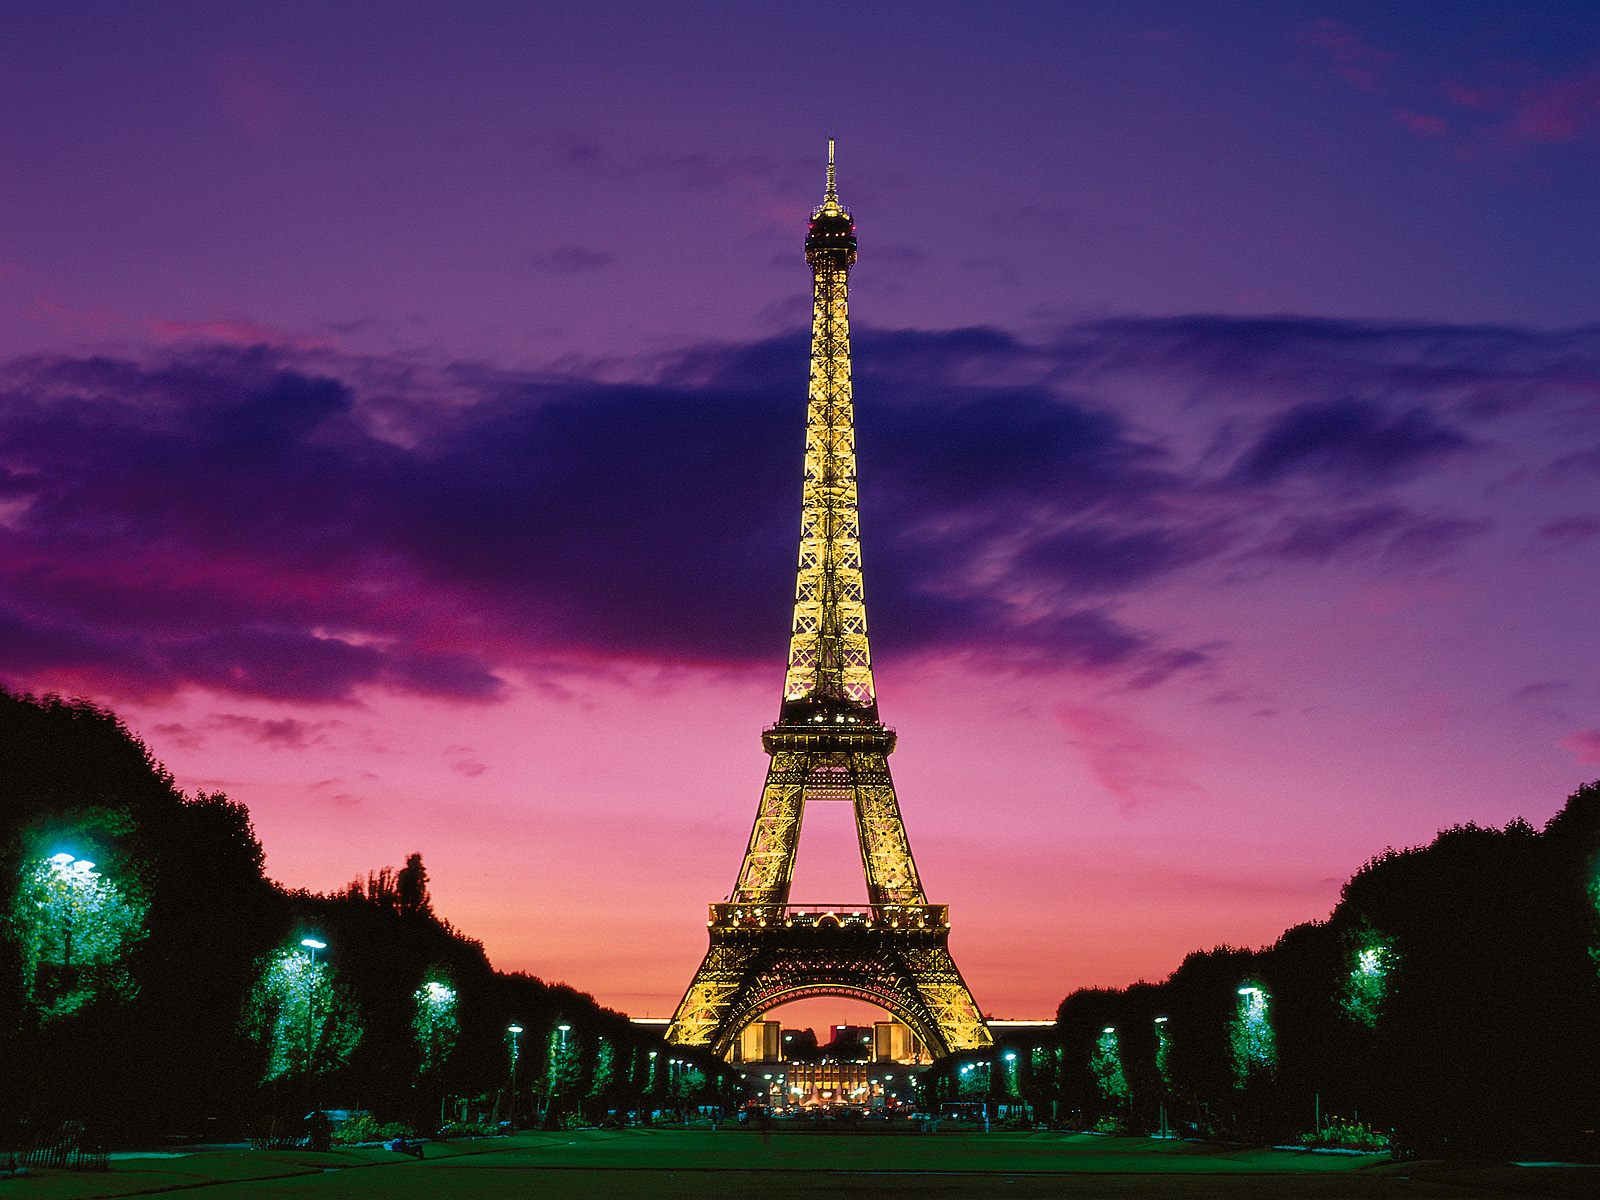 http://1.bp.blogspot.com/-OgR-0xy_w6Y/TinOA2B2-fI/AAAAAAAAAb8/5aMLxeWobEk/s1600/eiffel_tower_at_night_paris_france-normal.jpg#courage%20the%20cowardly%20dog%20eiffel%20tower